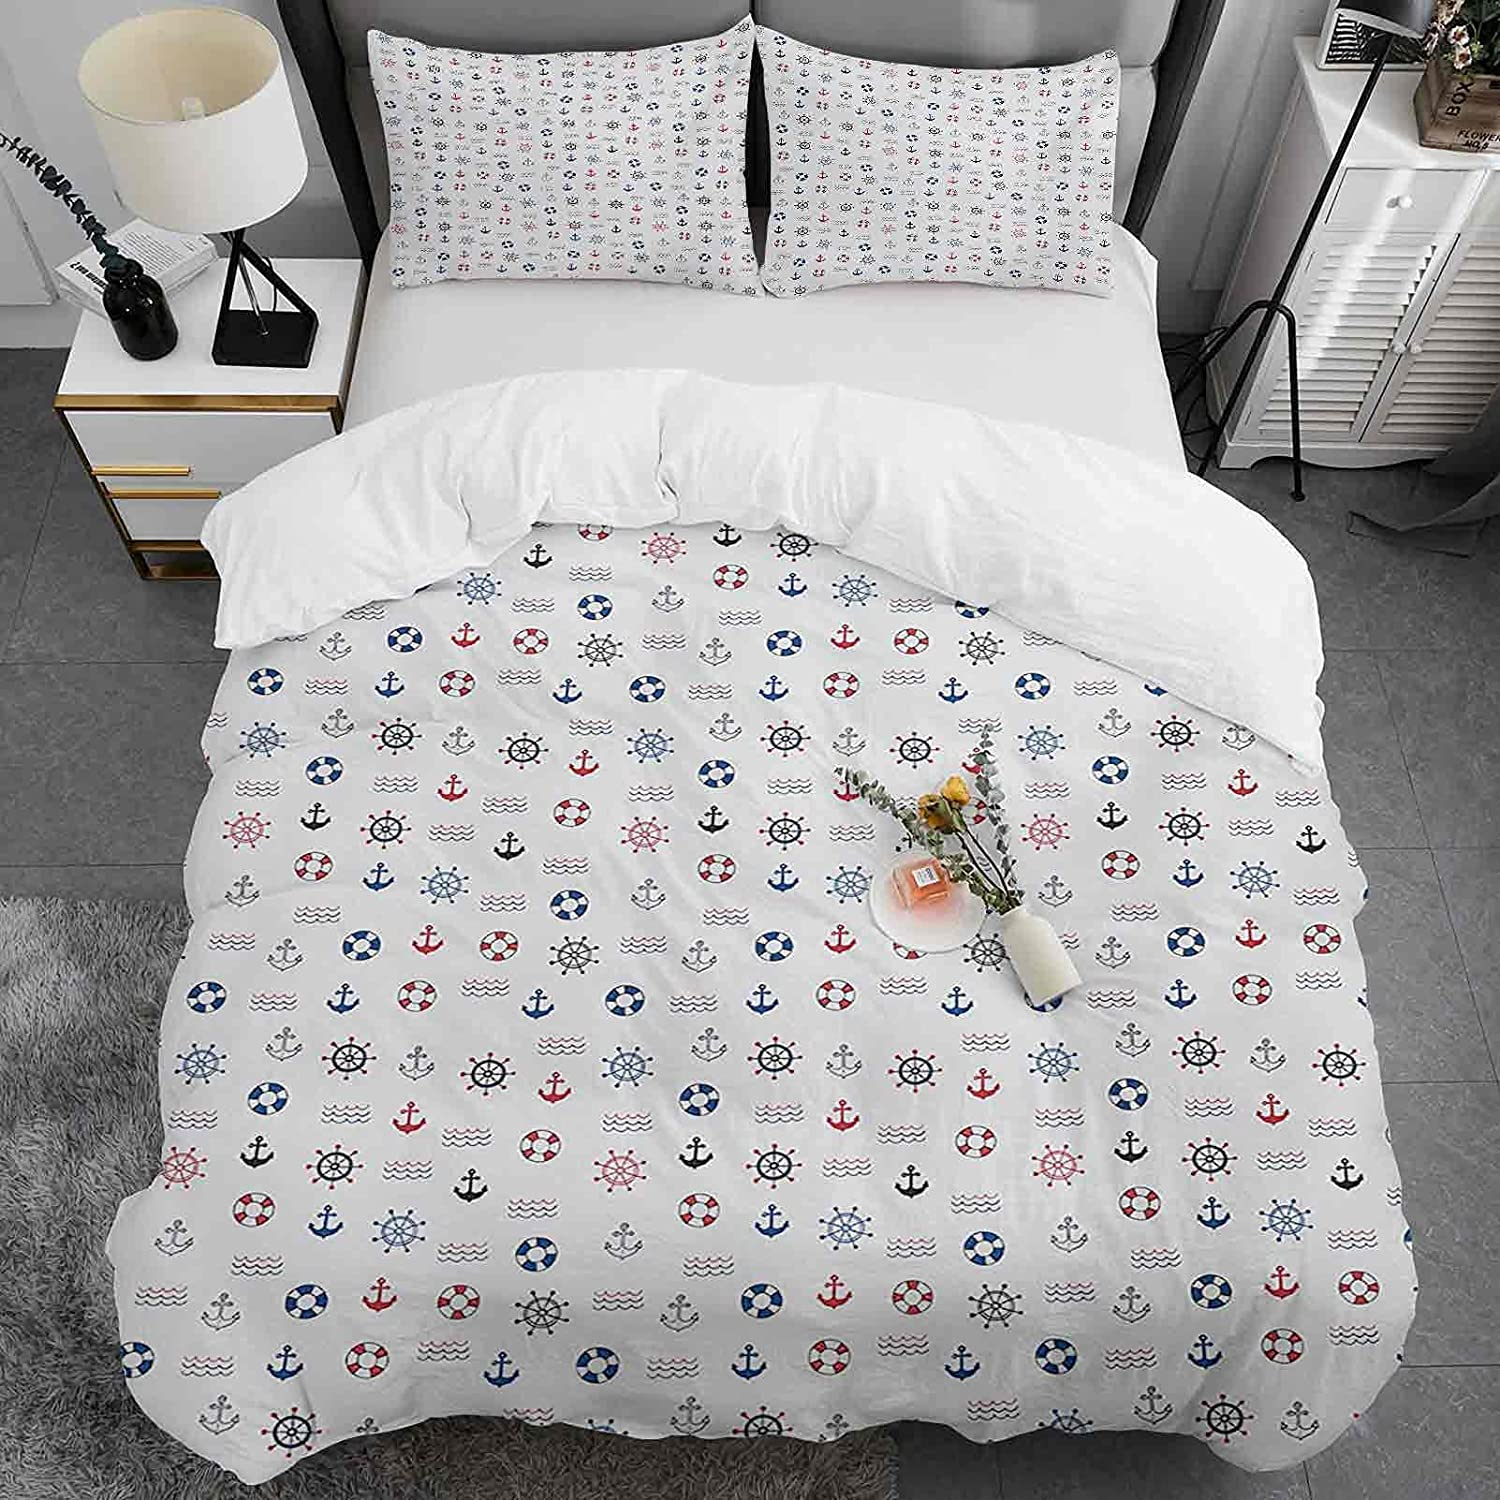 l Reservation Duvet Cover Full Selling Size Ancho Lifebuoy Featured Marine Elements